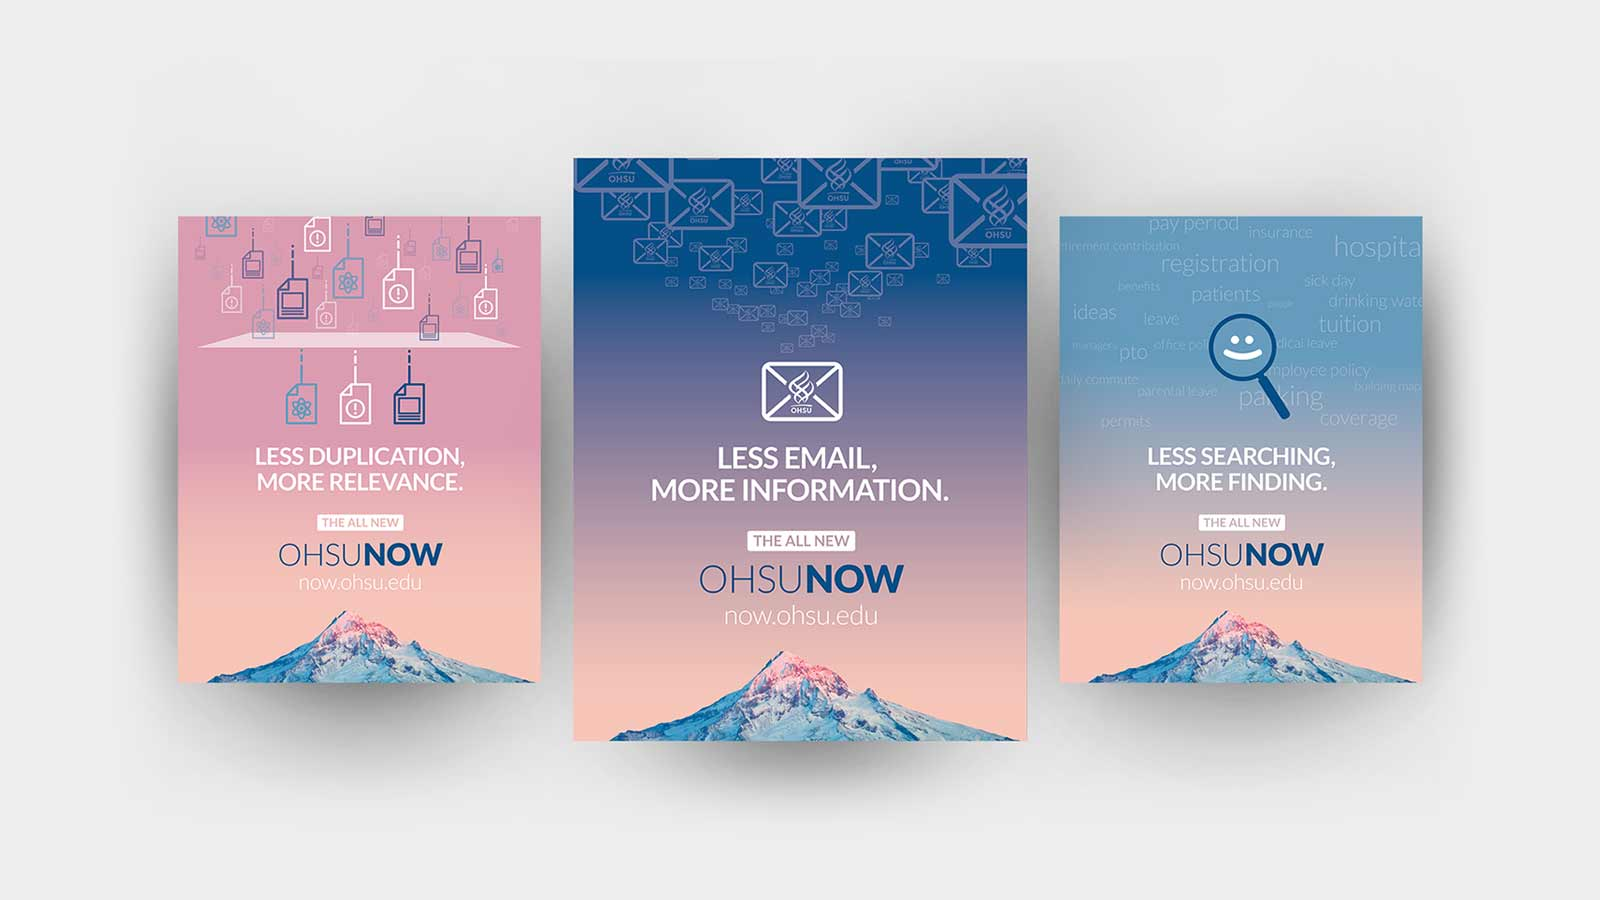 OHSU Now marketing campaign array of poster designs